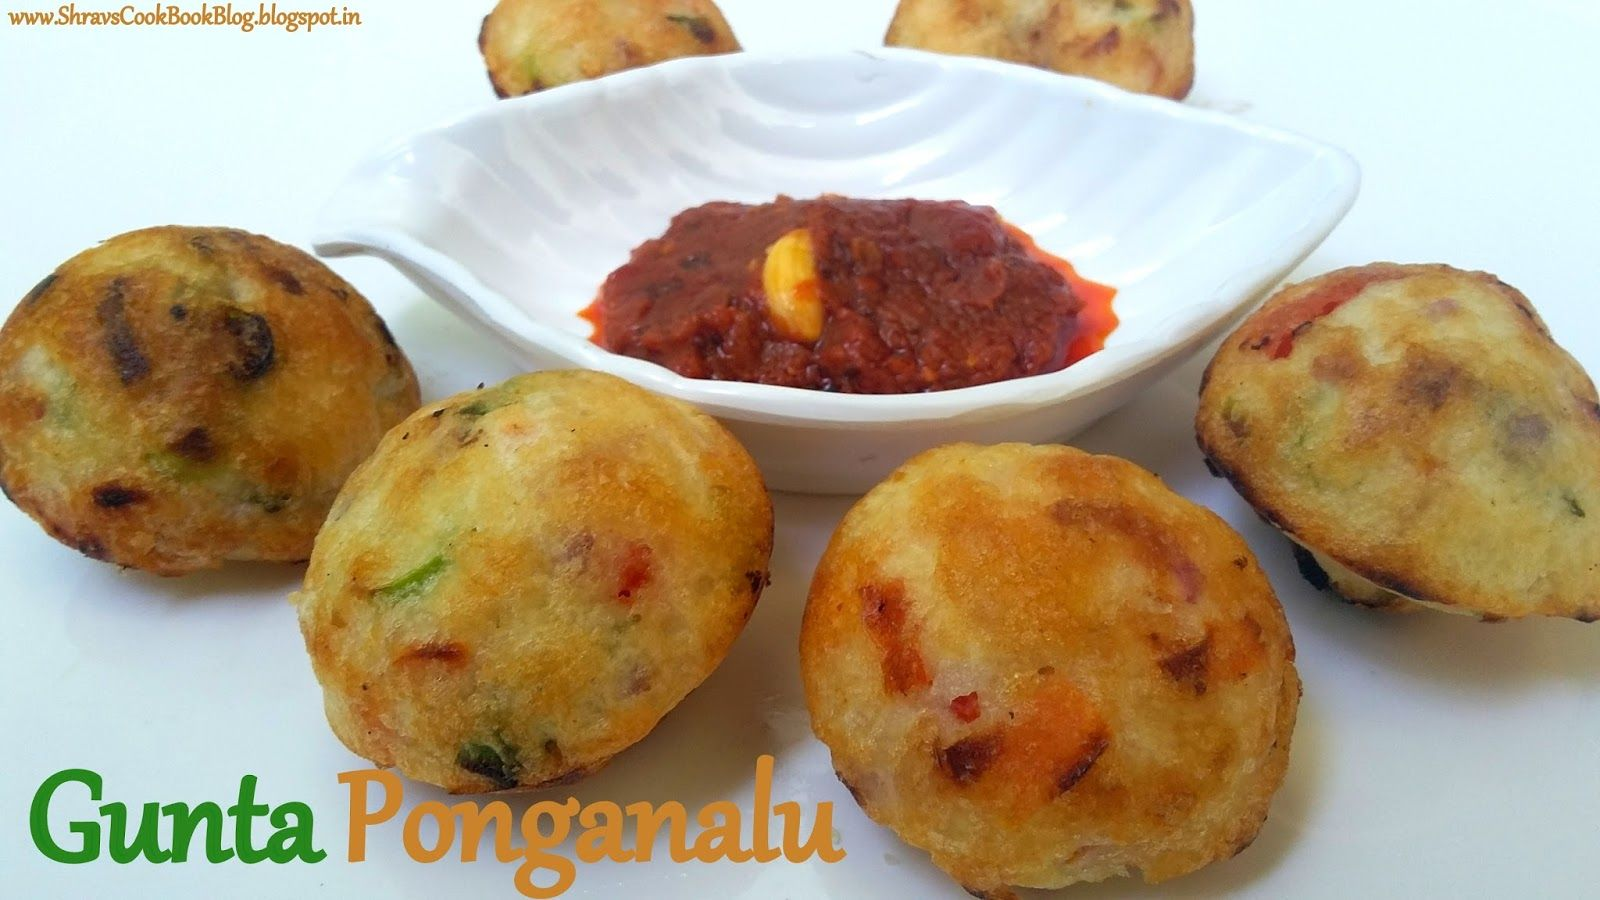 Ponganalu gunta ponganalu recipe indian food pinterest south gunta ponganalu recipe in telugu is a popular south indian breakfast recipe also known as pongadalu here i am showing the savoury versio with dosa batter forumfinder Image collections